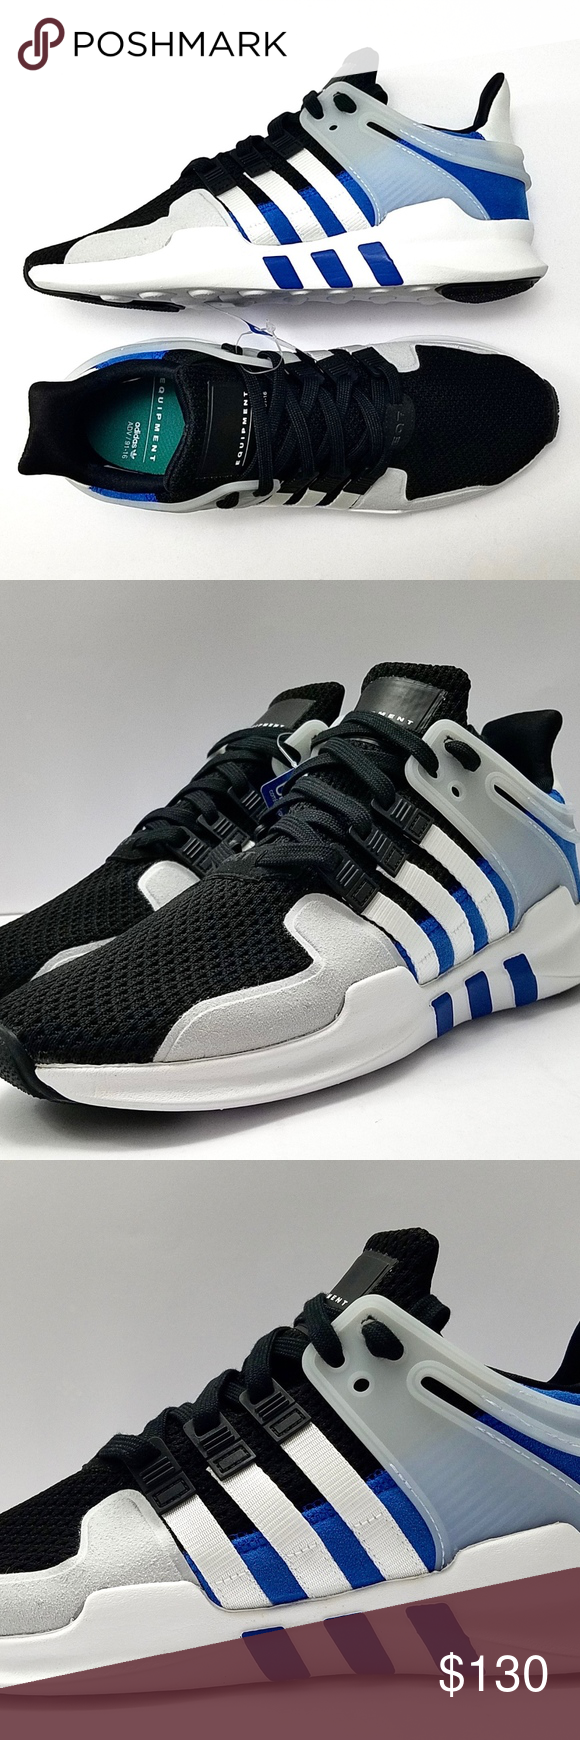 outlet store 76cff 38a21 Adidas EQT Support ADV Shoes BY9583 Adidas EQT Support ADV Shoes Mens Size  11.5 Black White